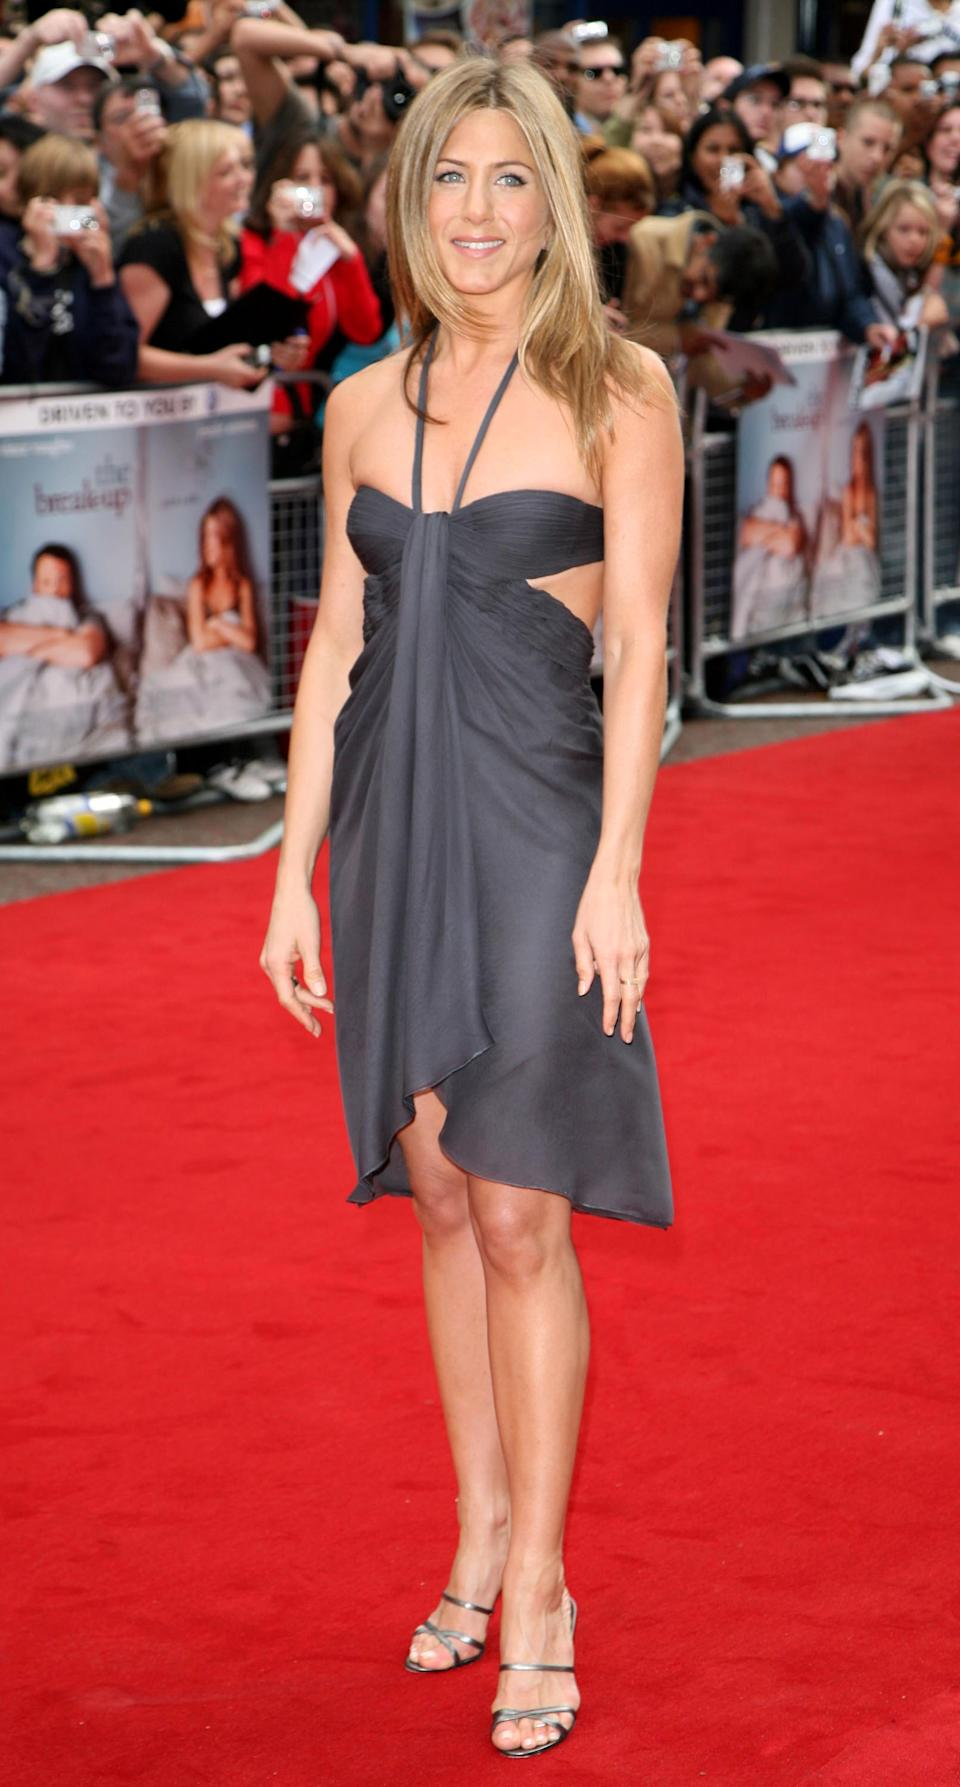 """Aniston opted for a halter gown with cut-outs for London premiere of """"The Break-Up"""" in 2006. (Photo by Tim Whitby/WireImage)"""